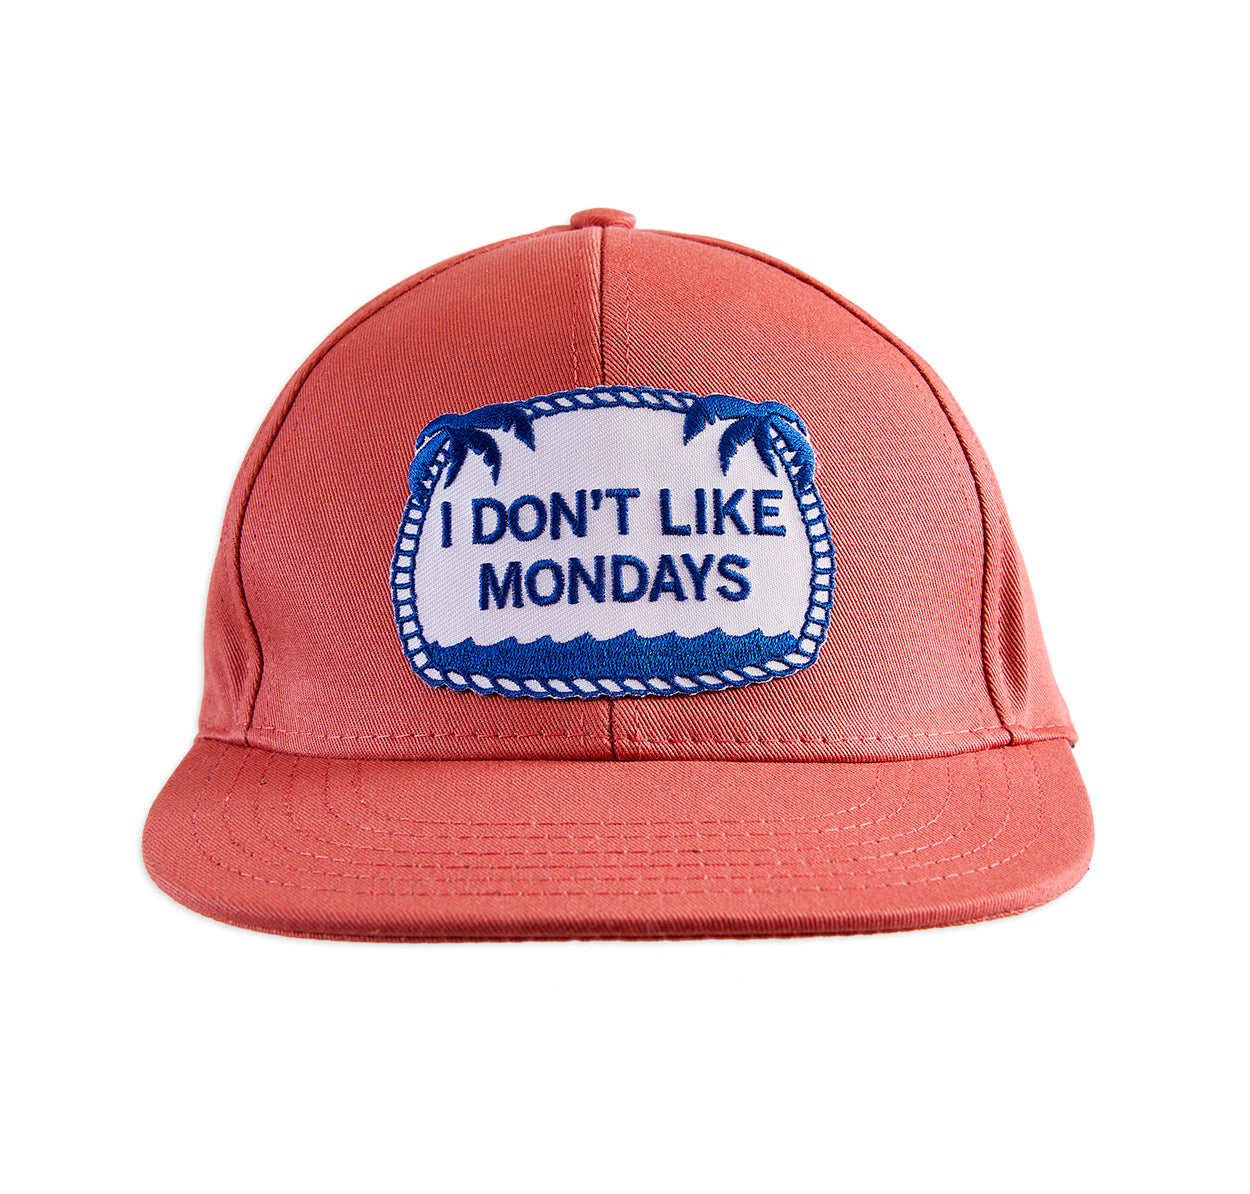 I Don't Like Mondays ball cap